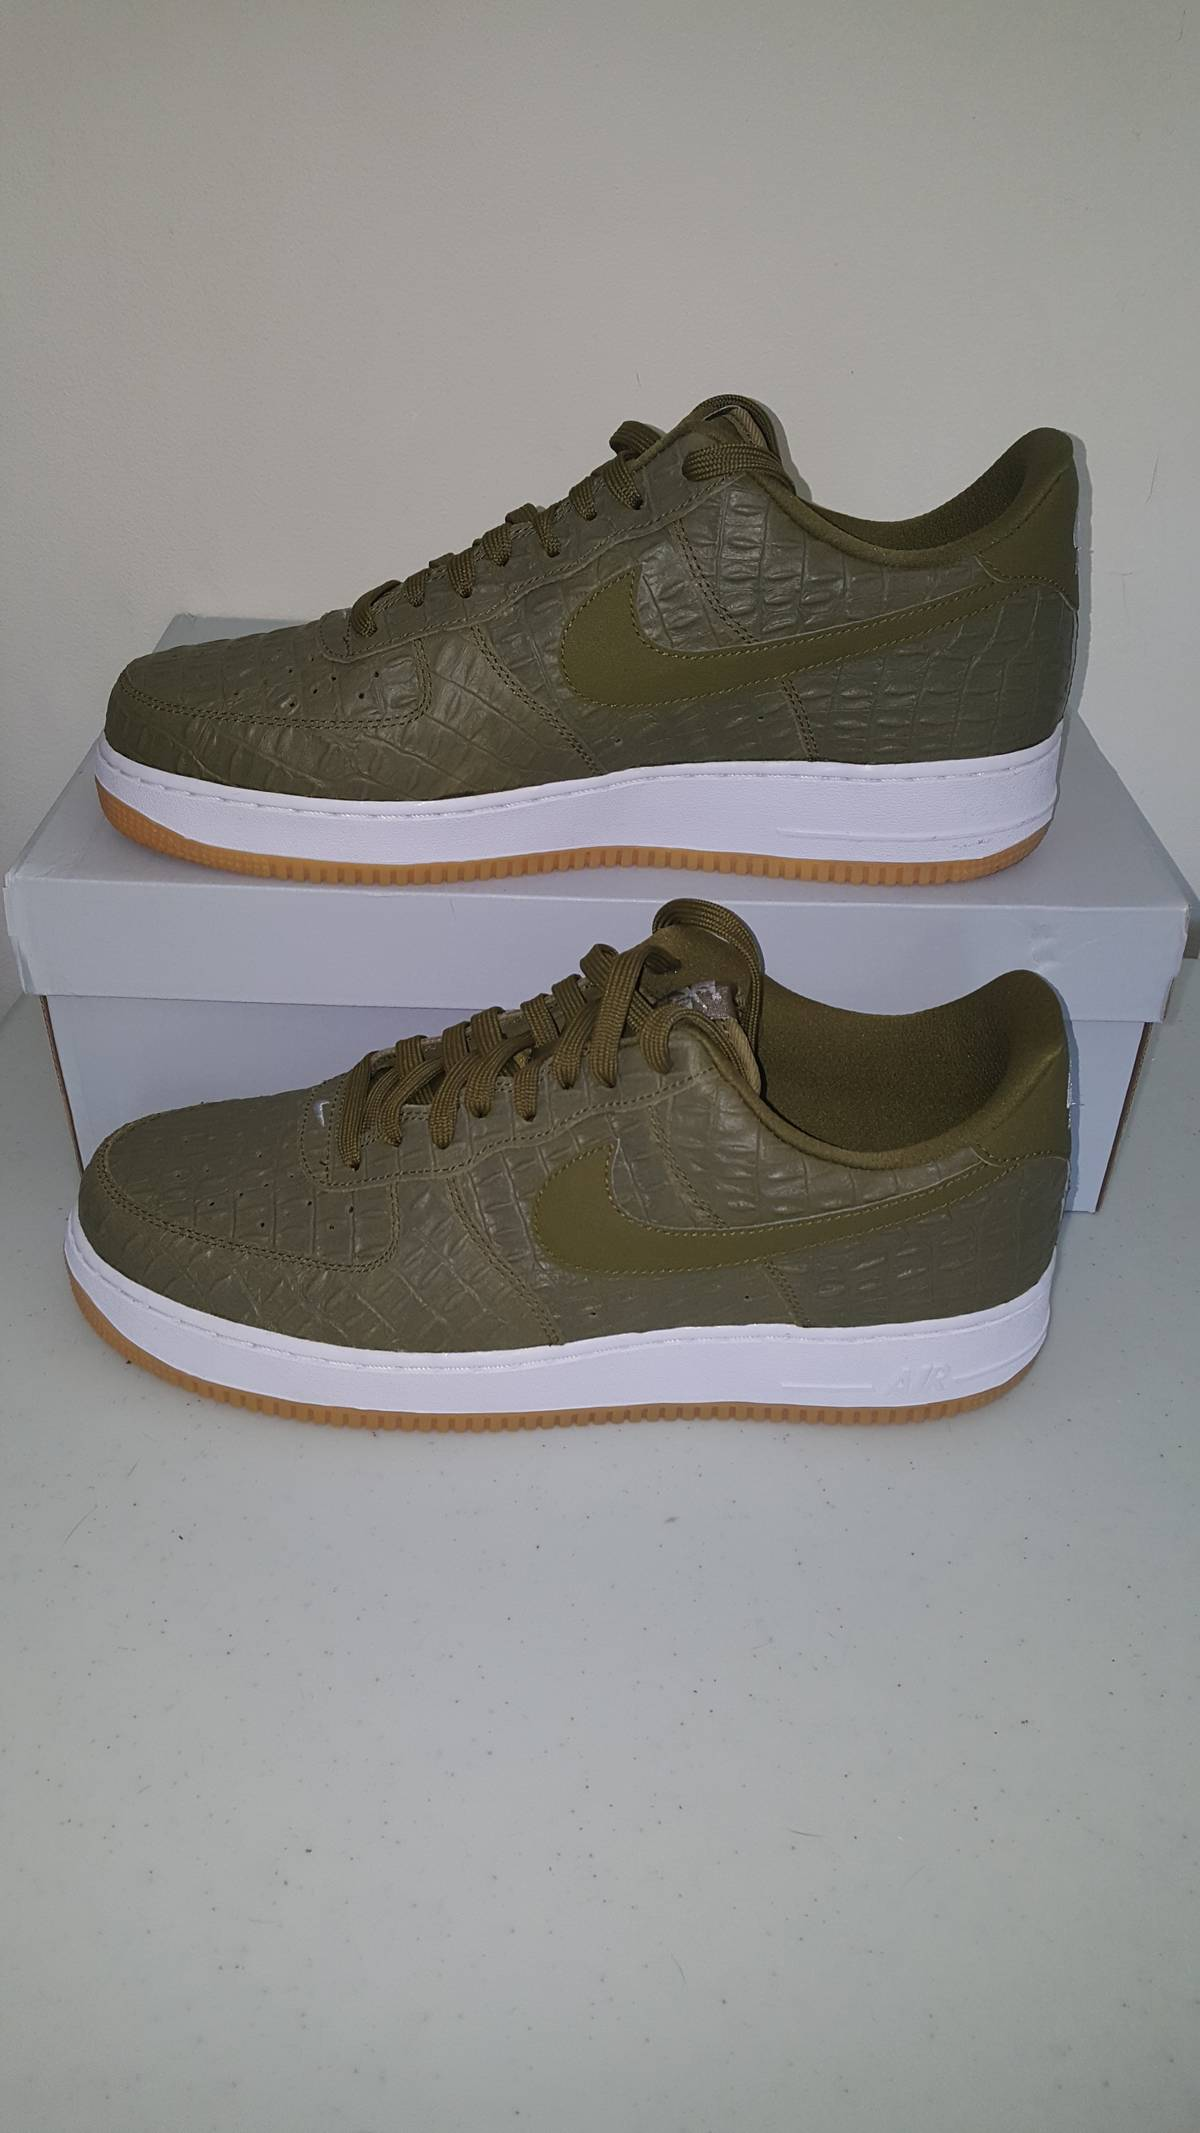 Nike Nike Air Force 1 Low Militia Green Croc Size 13 - Low-Top Sneakers for  Sale - Grailed f974ec4b3